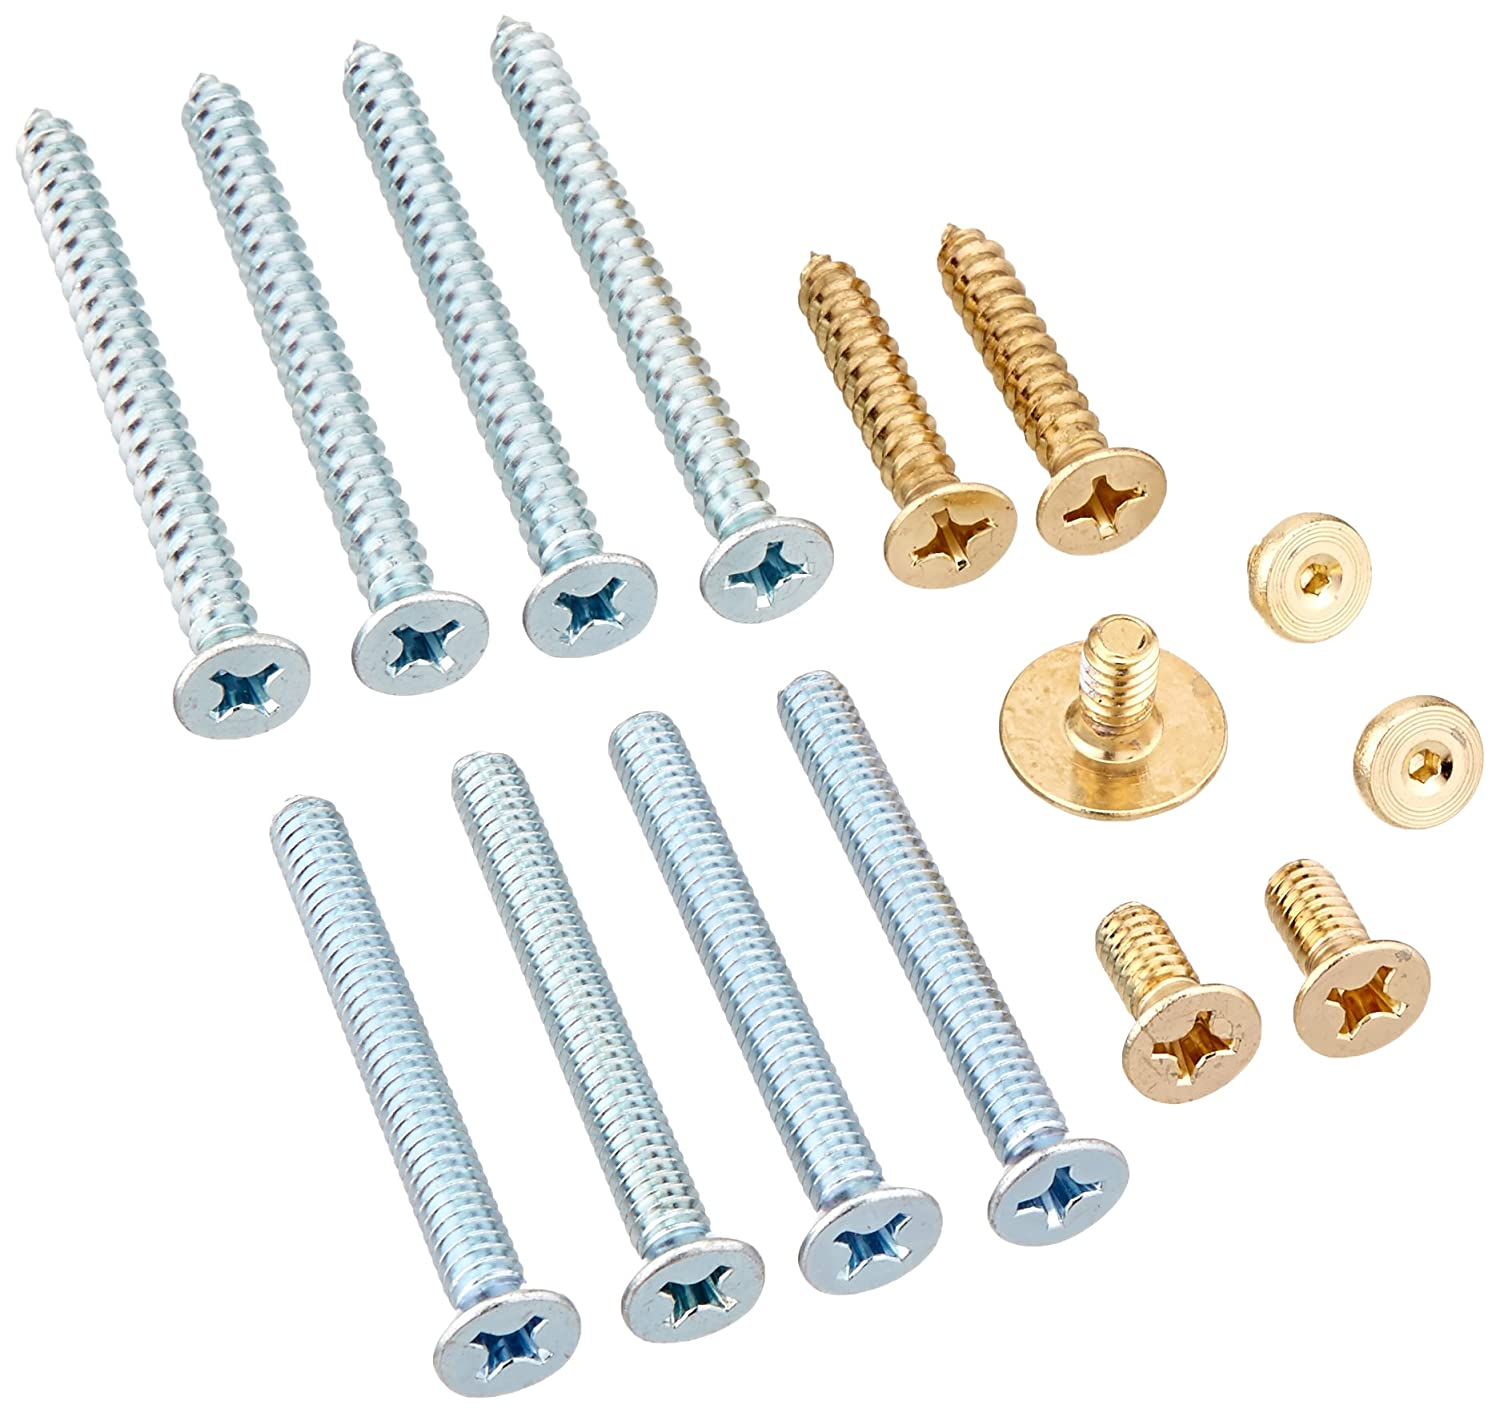 LCN 4010WMS3 4010-WMS US3 Brass Plated Screw Pack